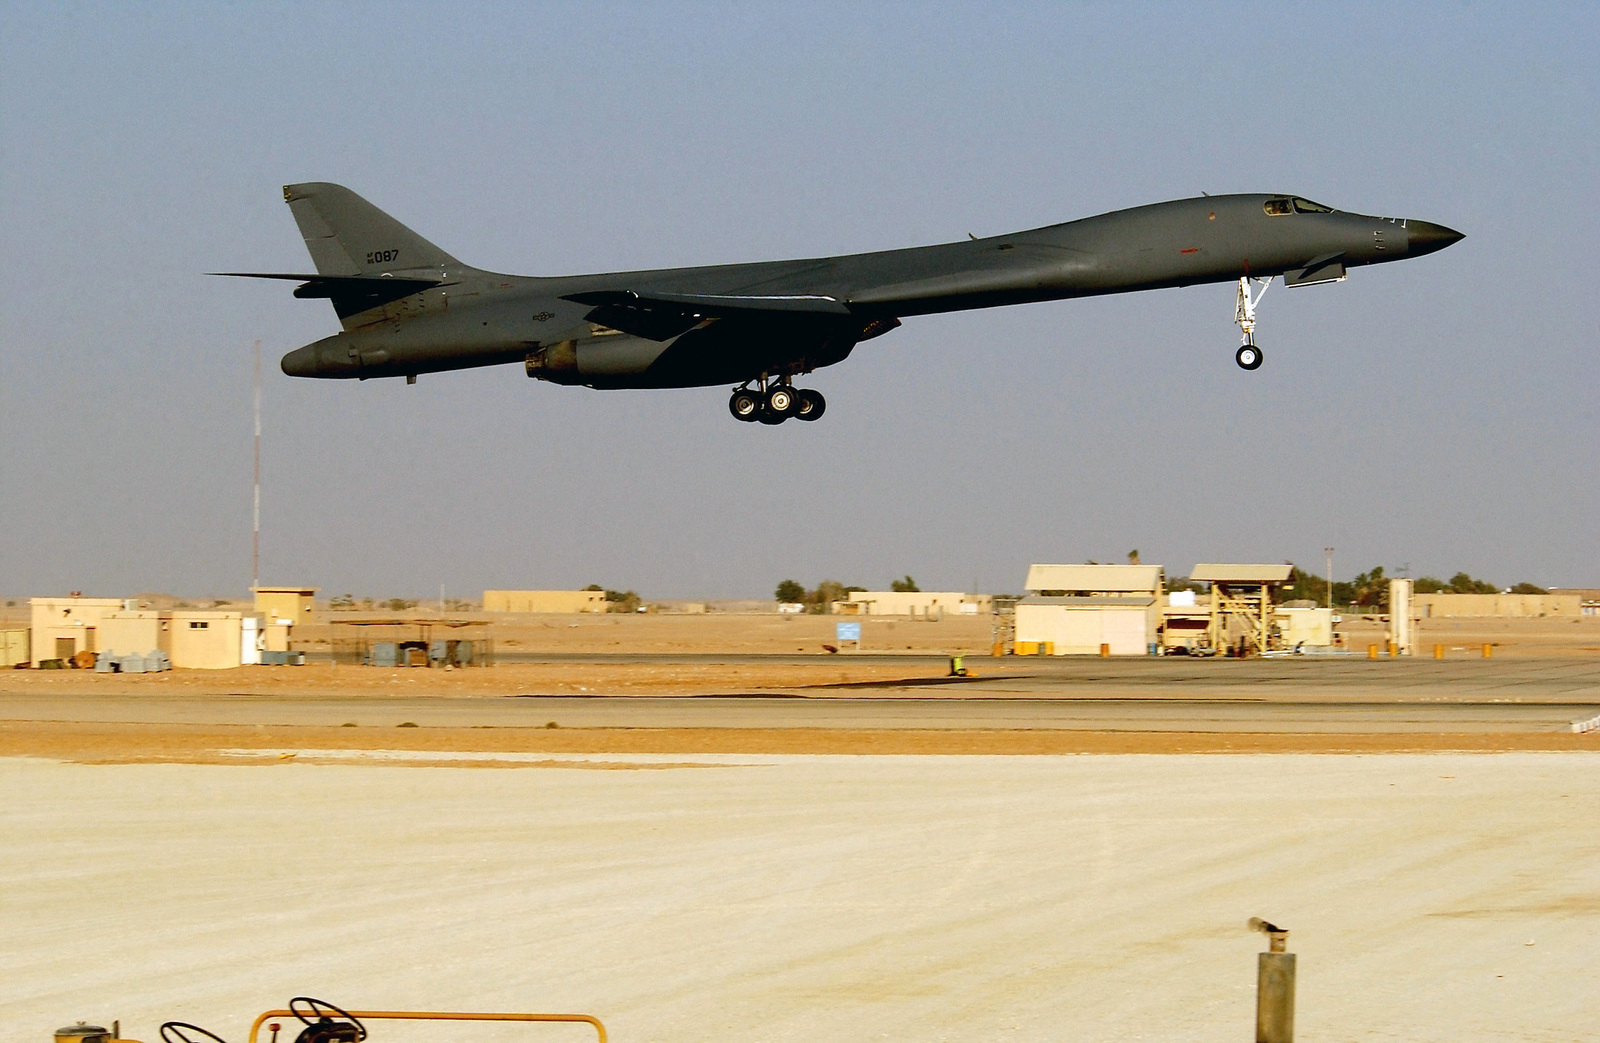 A US Air Force (USAF) B-1B Lancer aircraft on final approach to landing at an undisclosed forward deployed location during Operation ENDURING FREEDOM